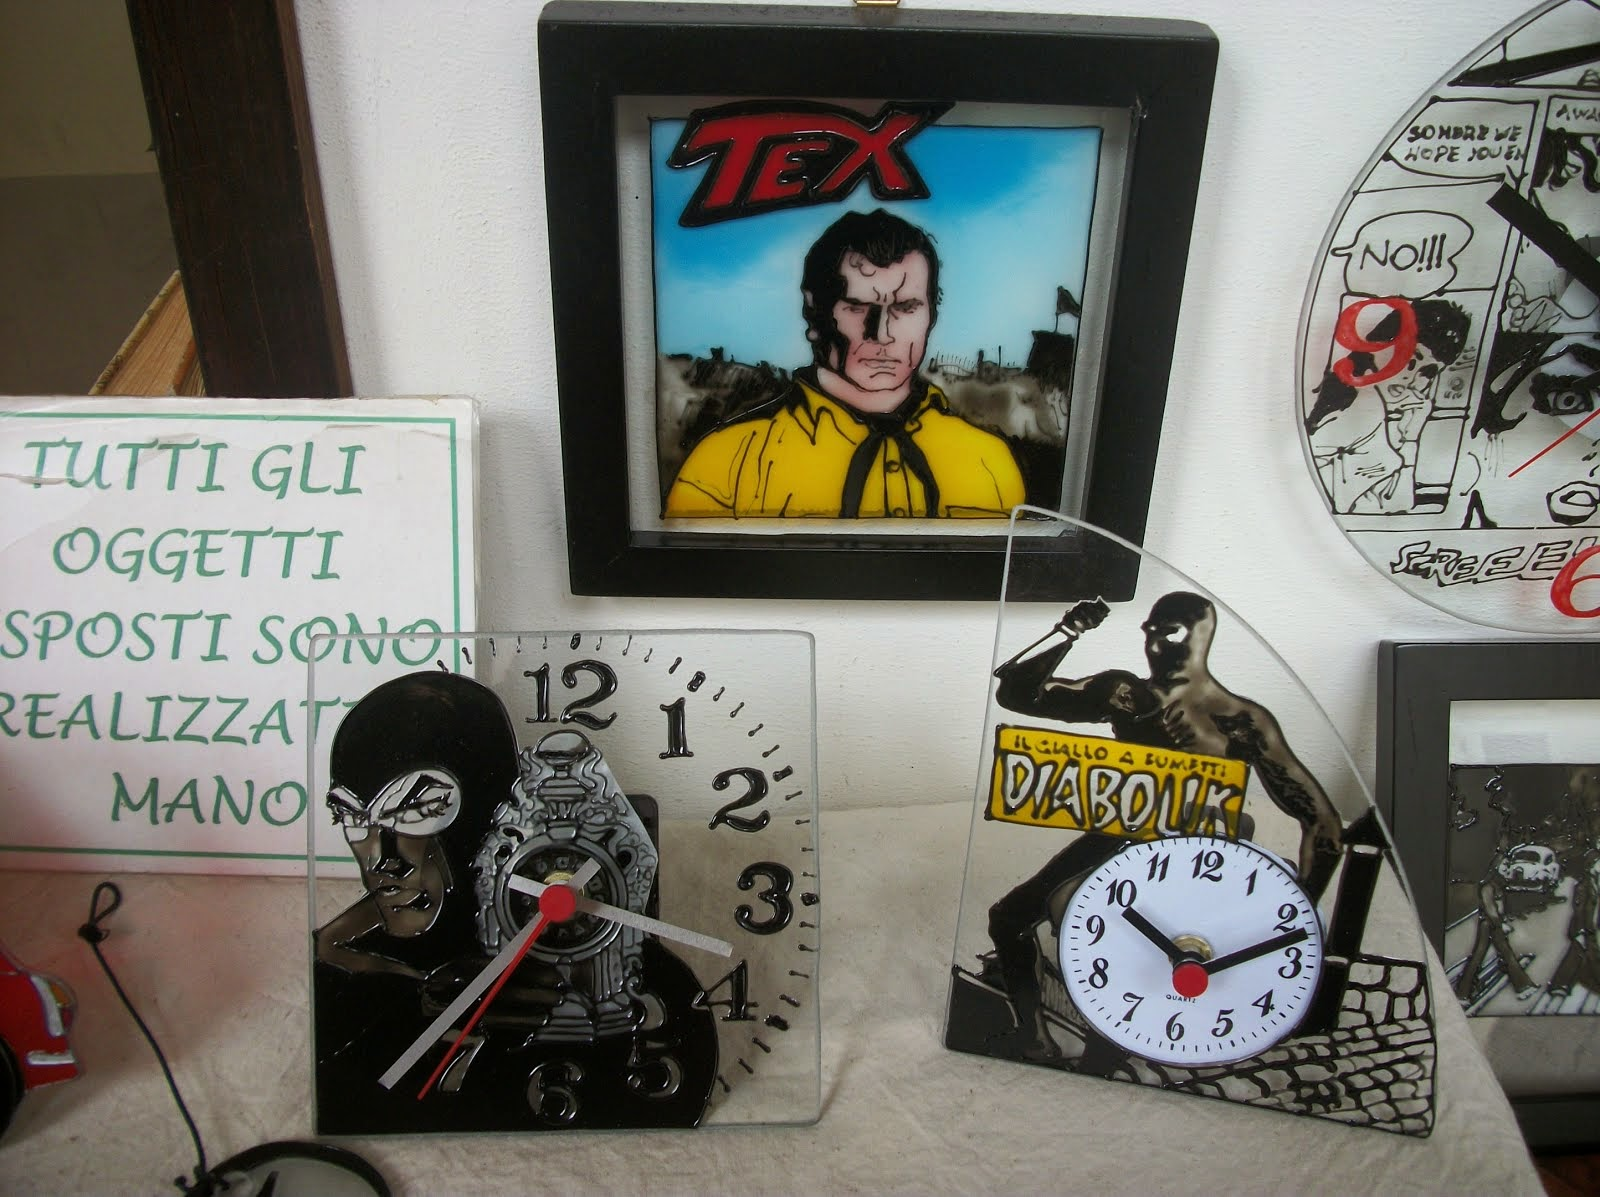 COMICS: OROLOGI E QUADRI - Comics: clocks and pictures